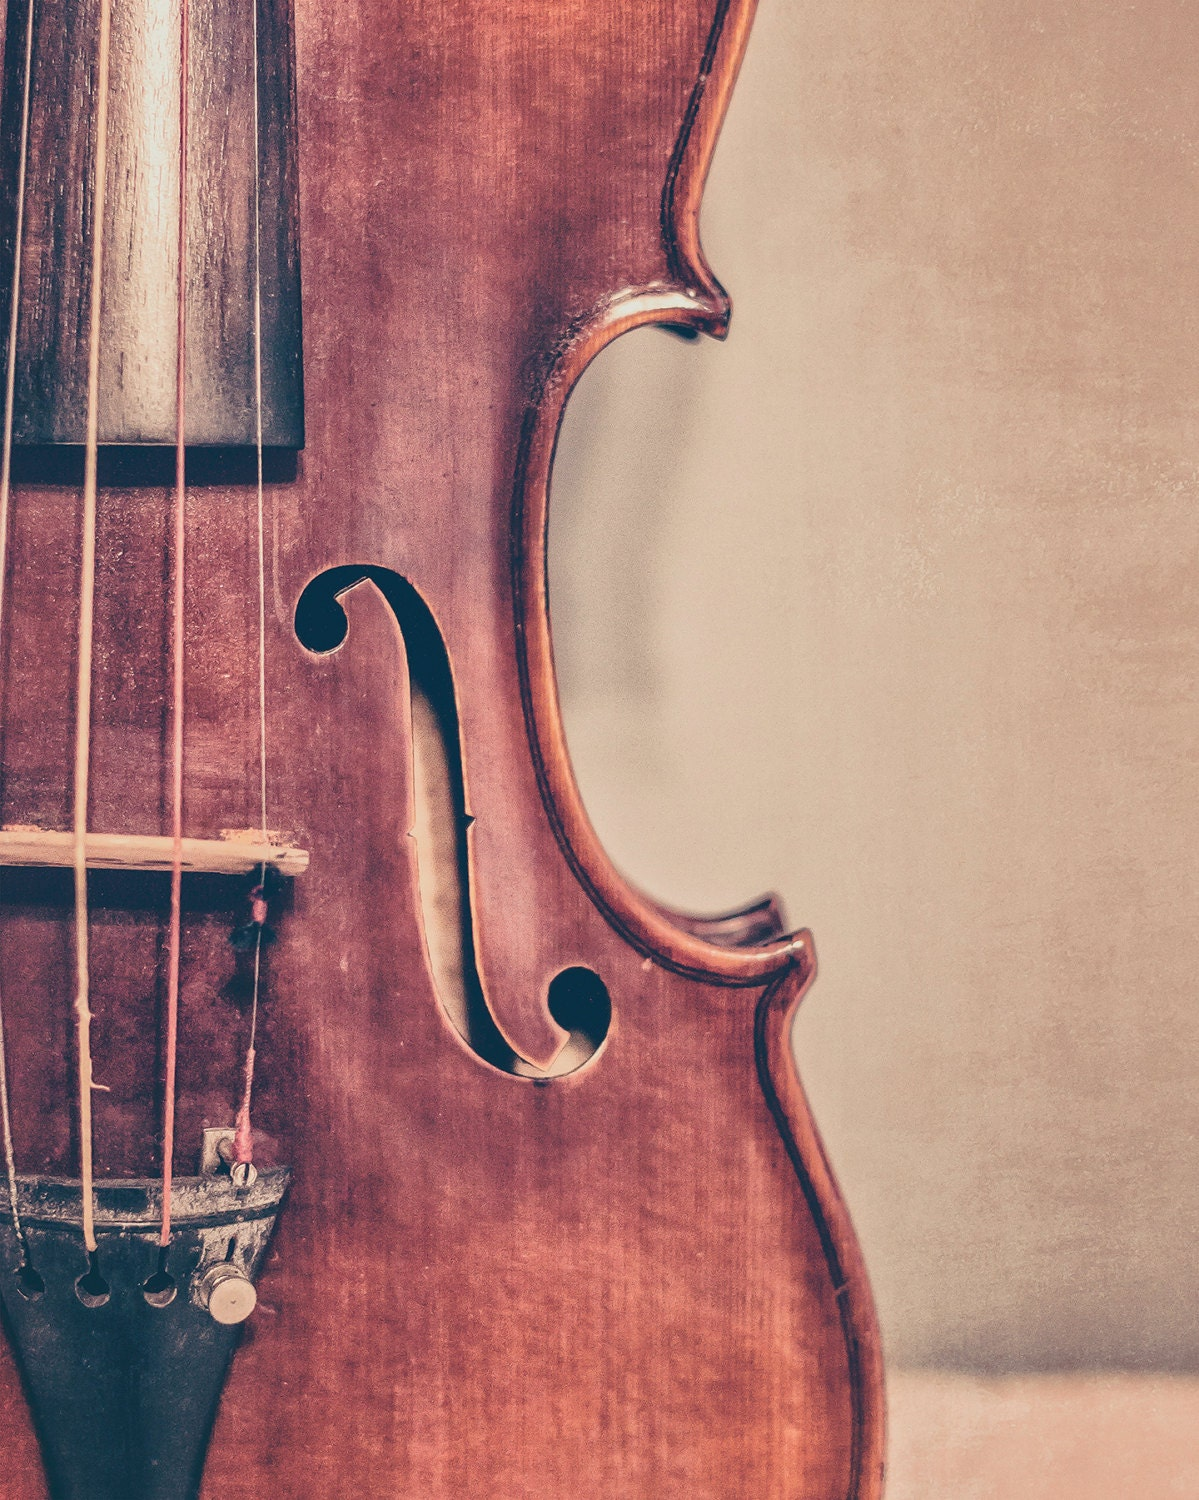 Violin Fine Art Photography Fiddle Photo Musical Instrument